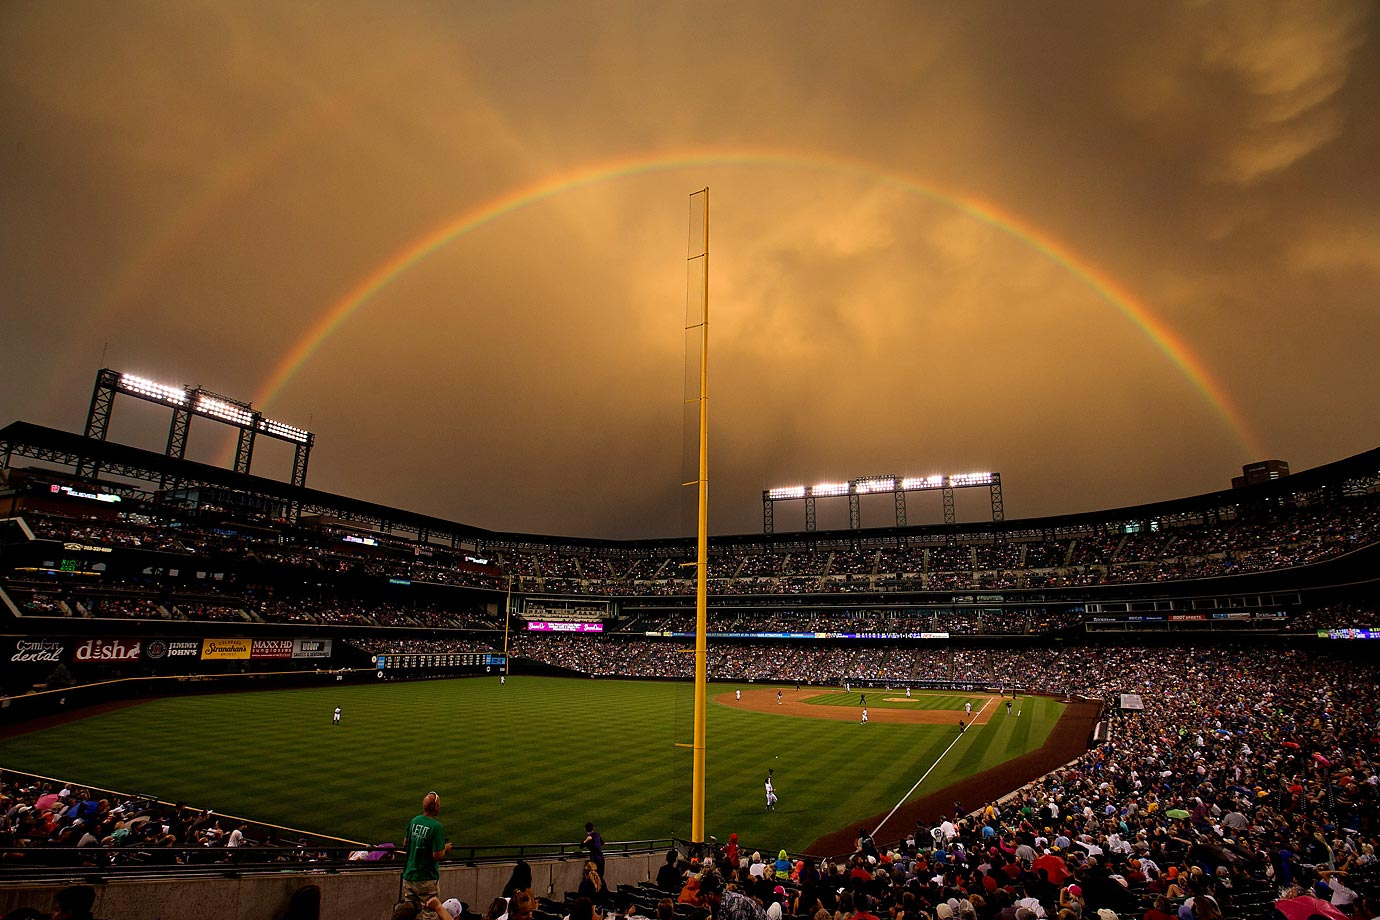 This incredible double rainbow could be seen over Coors Field on July 25, 2014.  Surprisingly, left fielder Corey Dickerson of the Rockies was able to concentrate enough to make a catch off a fly ball hit by Gaby Sanchez of the Pirates.